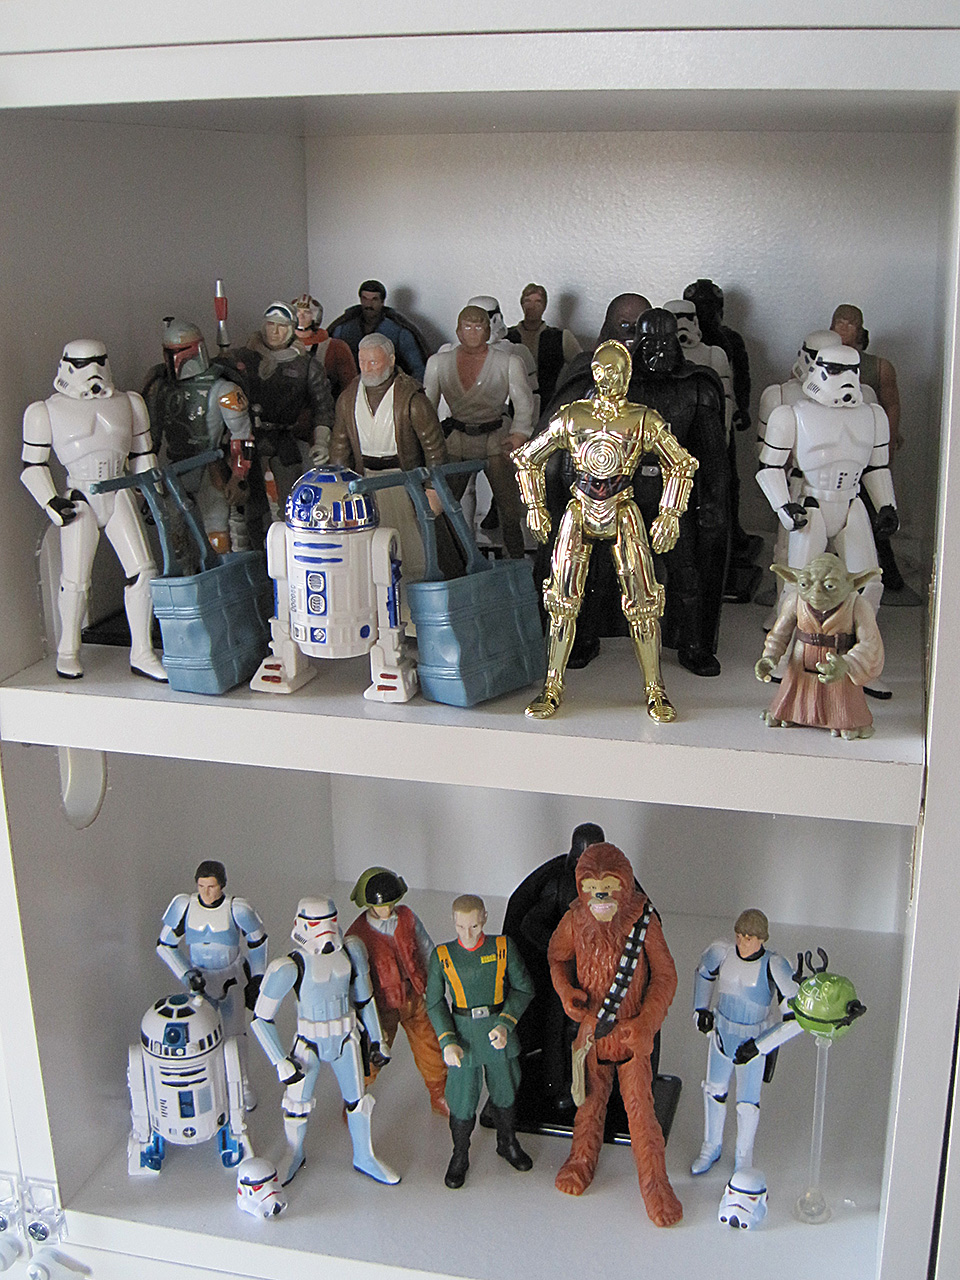 Star Wars Powers of the Force and comic book appearance action figures